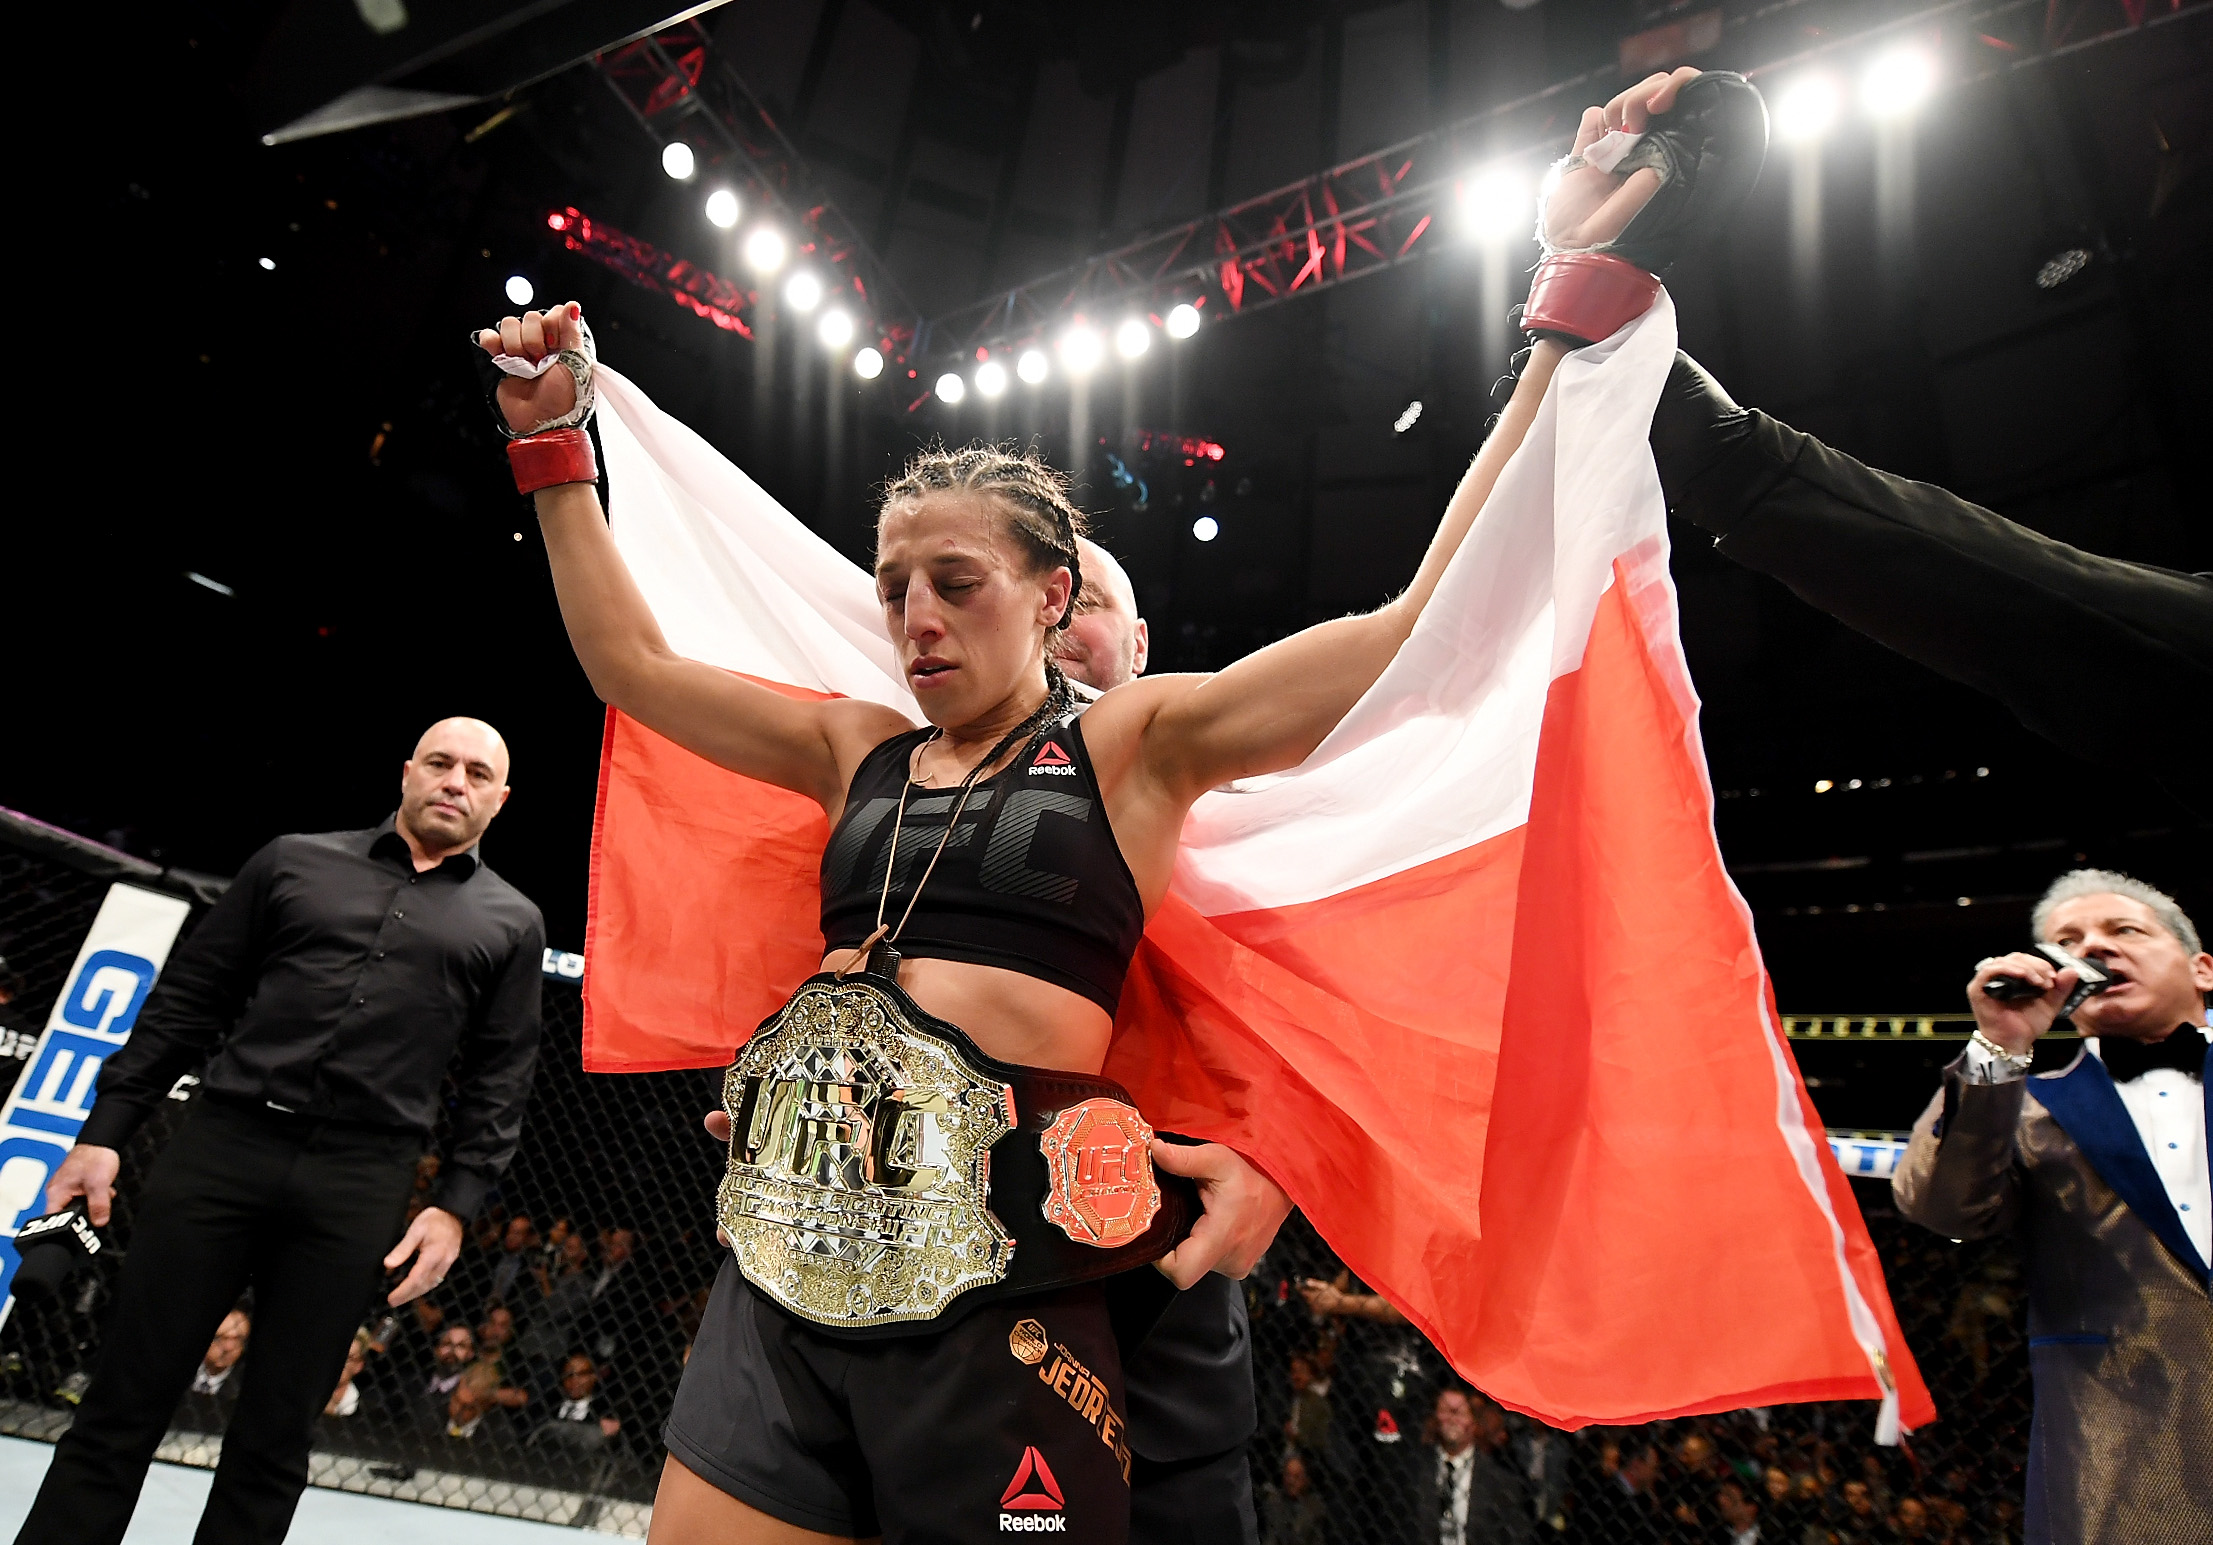 UFC strawweight champion Joanna Jedrzejczyk aims to emulate Conor McGregor's two-weight success